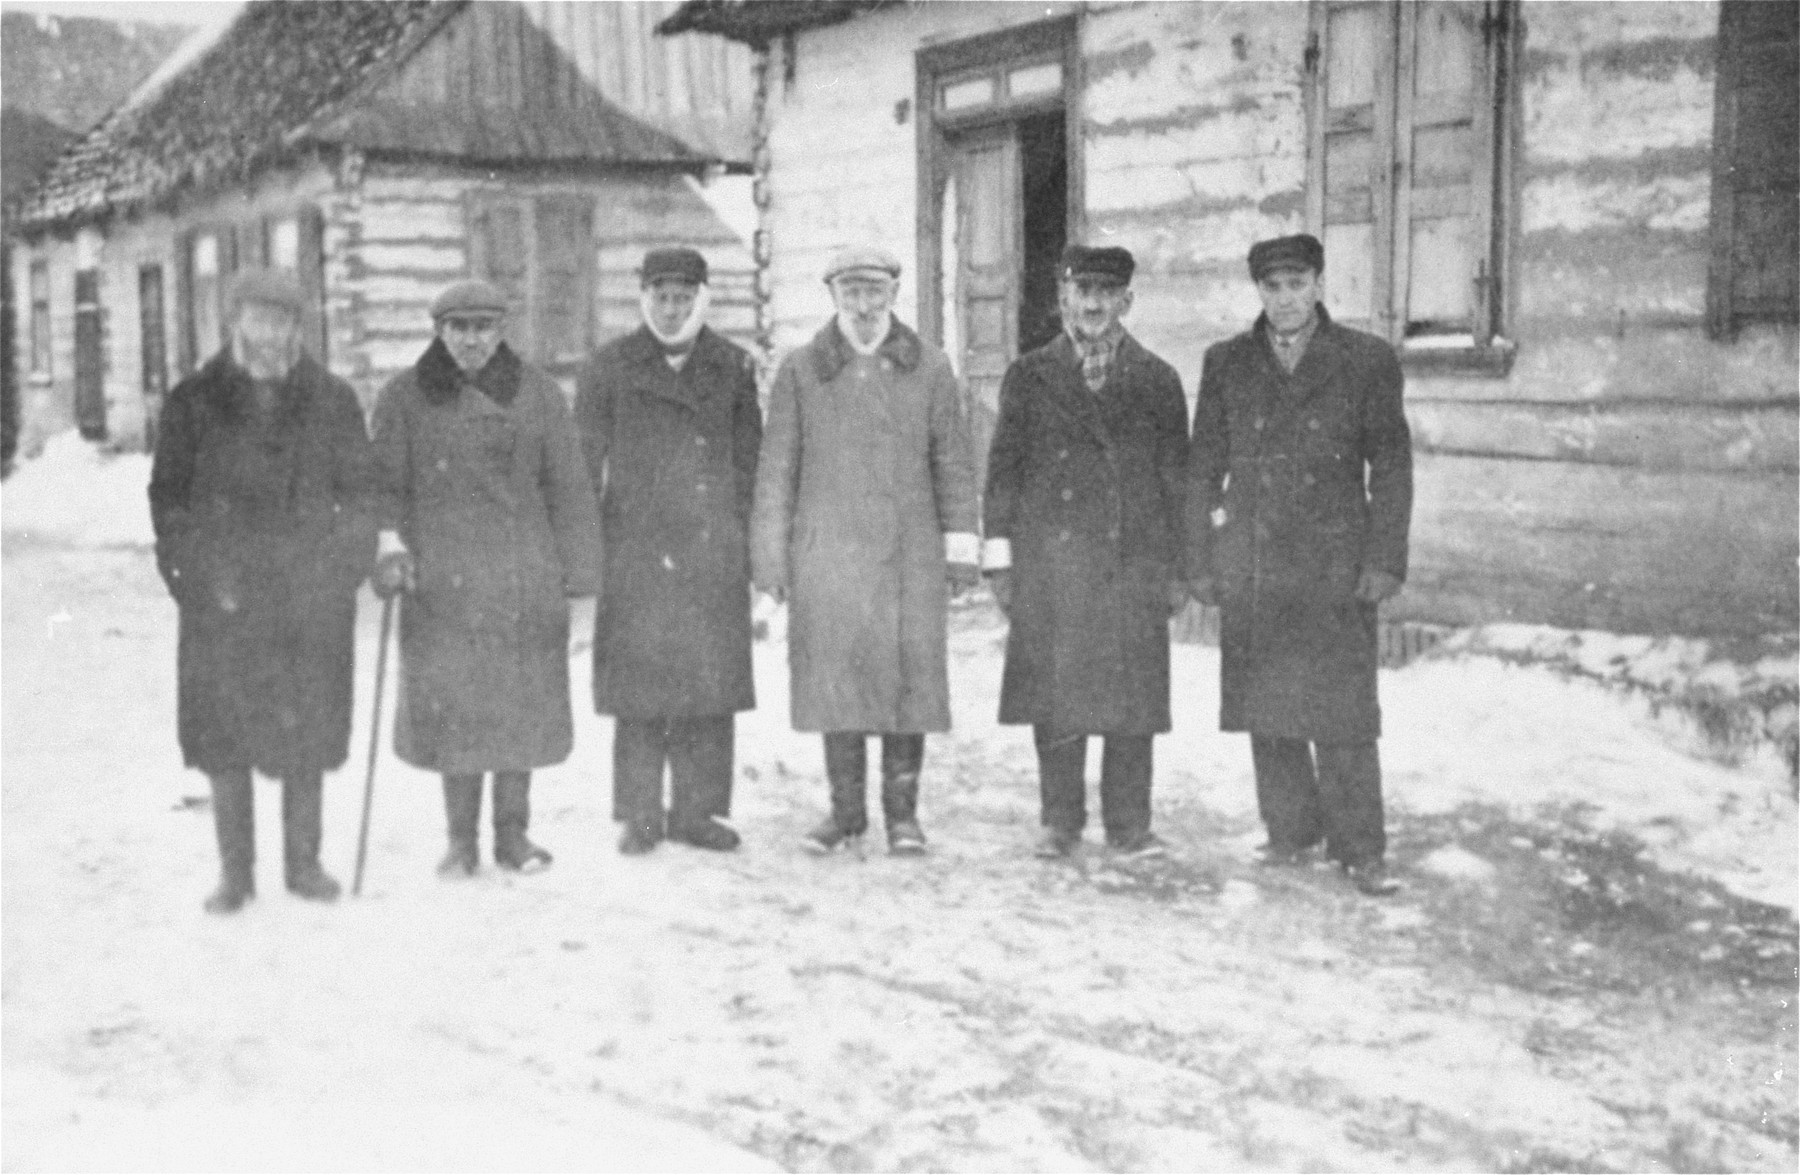 Six members of the local Jewish council pose on a snow covered street in the Wisznice ghetto.